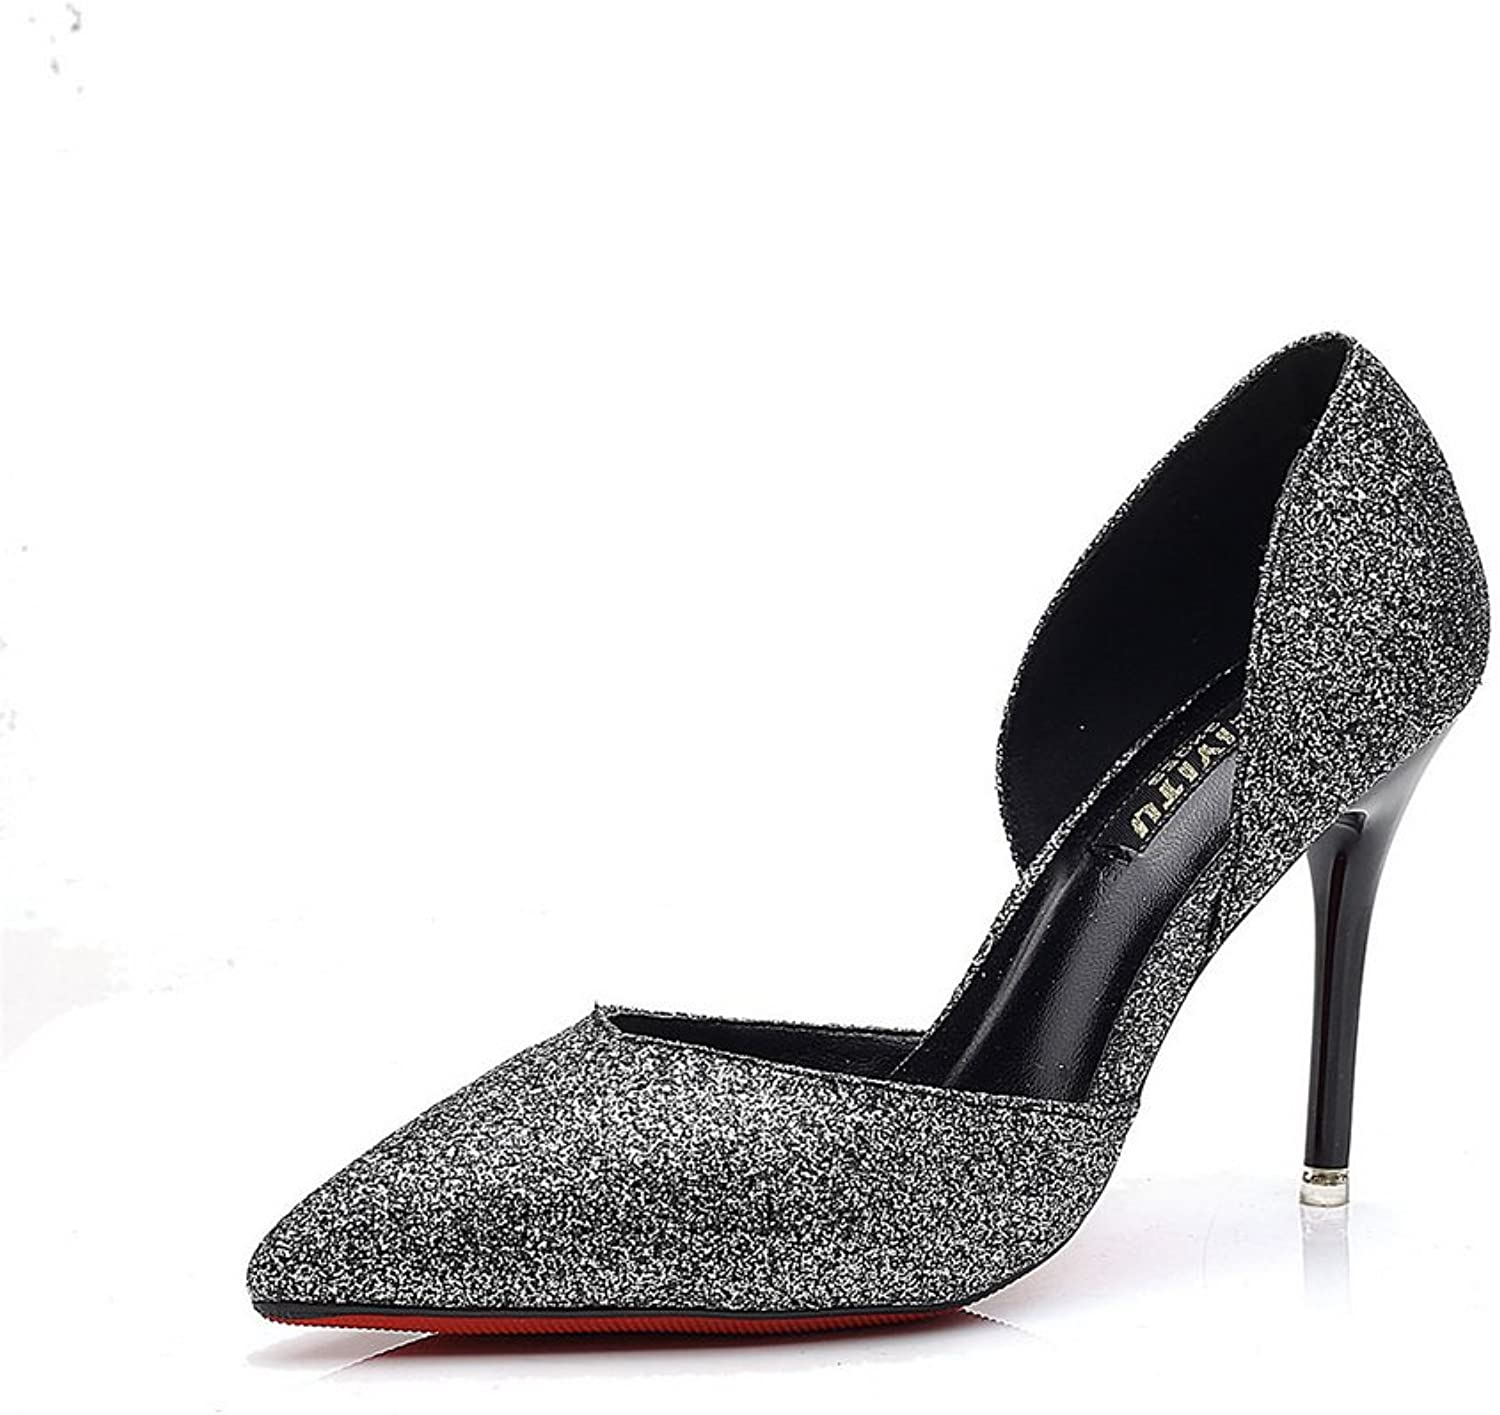 1TO9 Womens No-Closure Spikes Stilettos Pointed-Toe Black Sequin Pumps shoes - 4.5 B(M) US